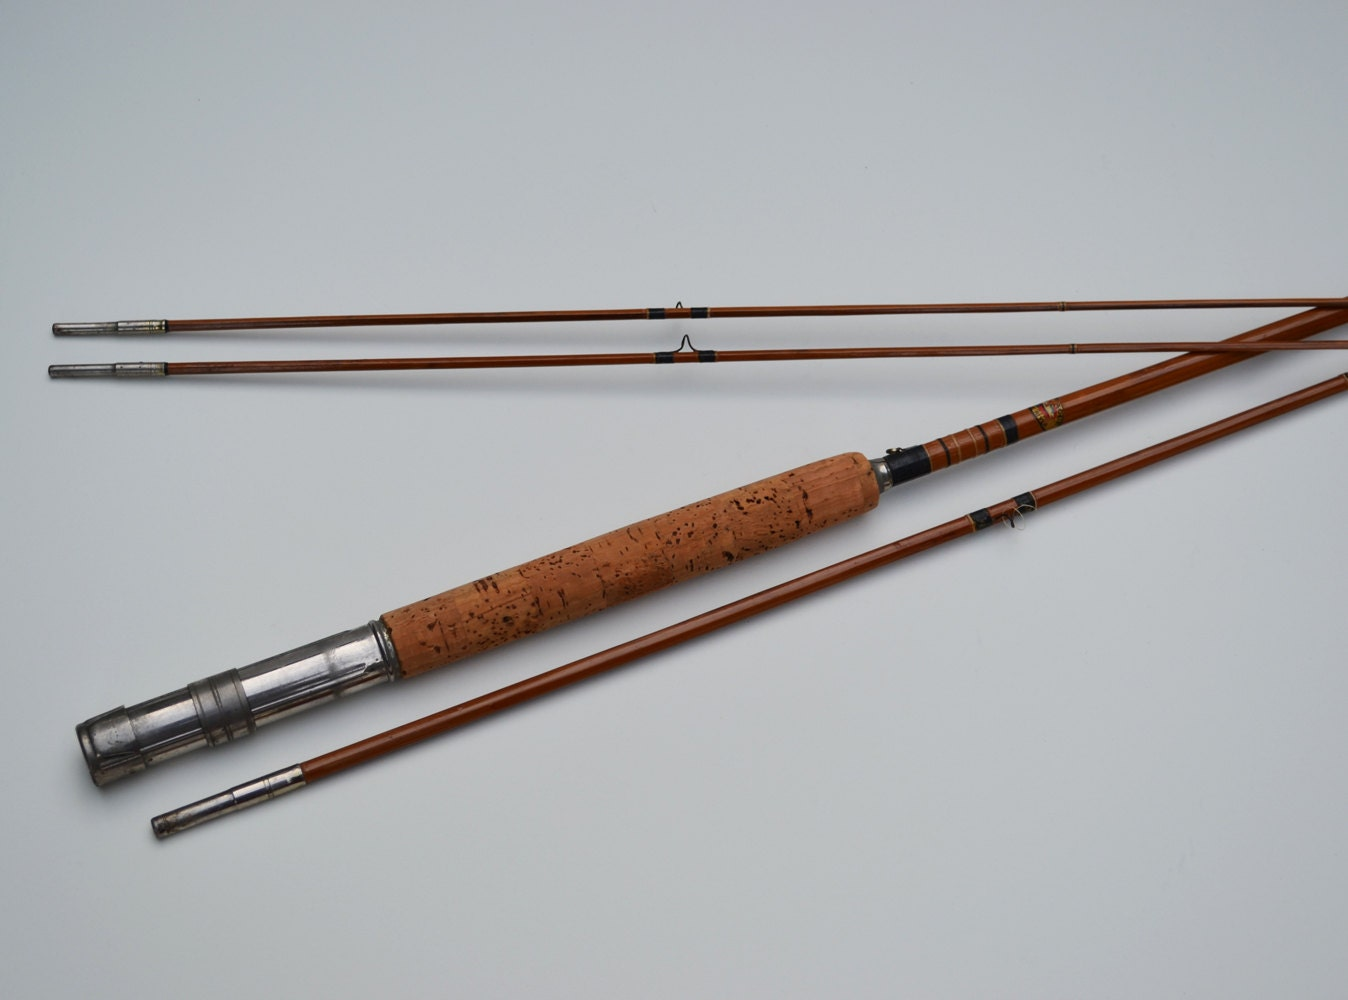 Vintage montague eagle river 9 foot bamboo fly by for Montague fishing rod